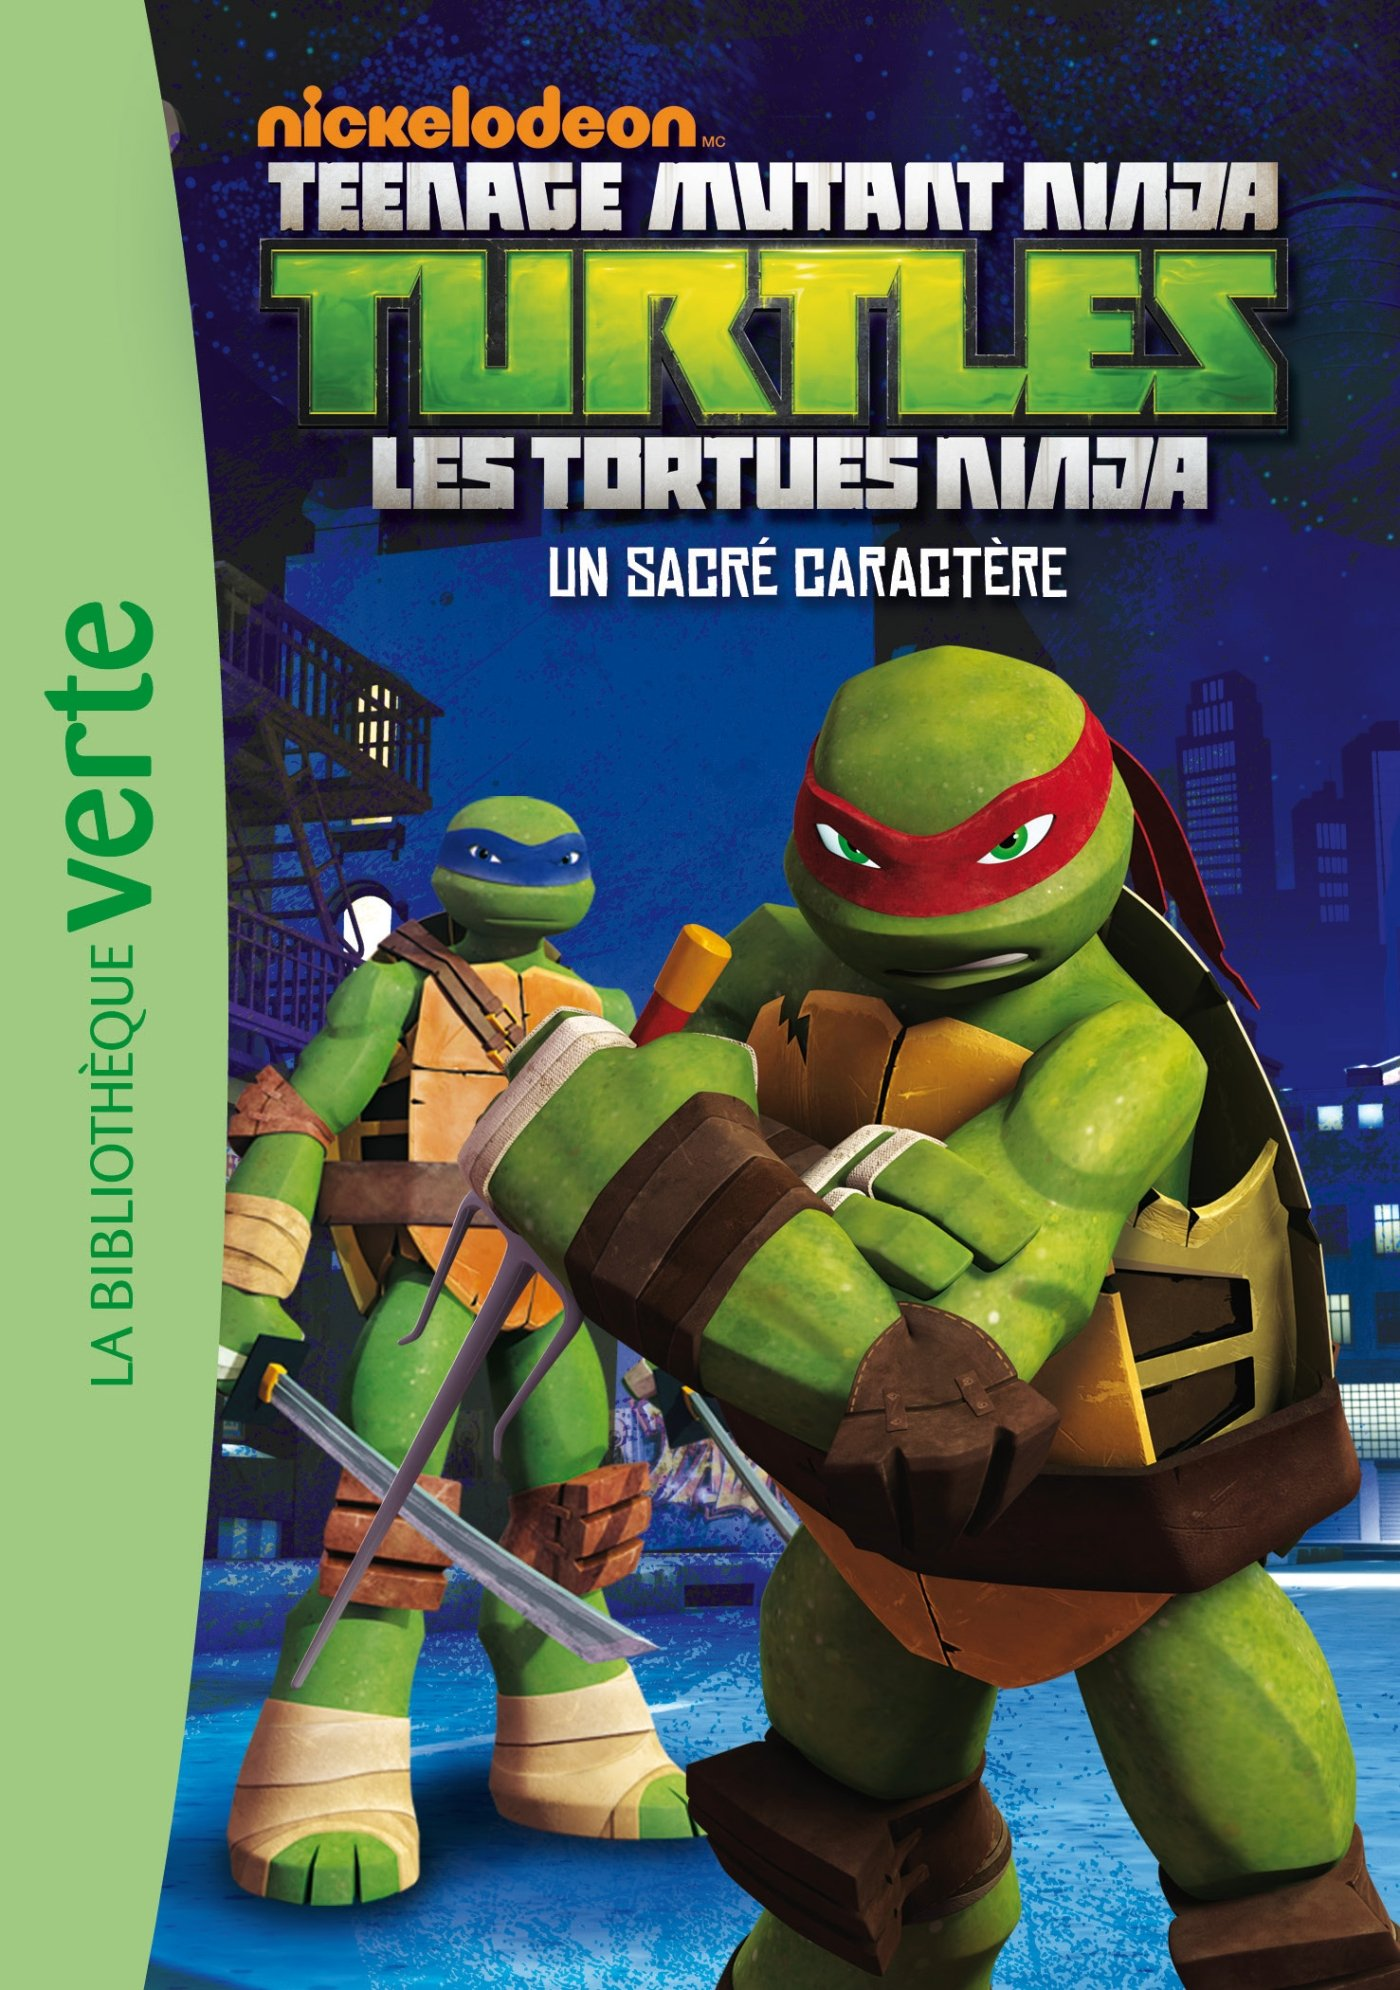 Nickelodeon Teenage Mutant Ninja Turtles, Tome 2 : Un sacré ...